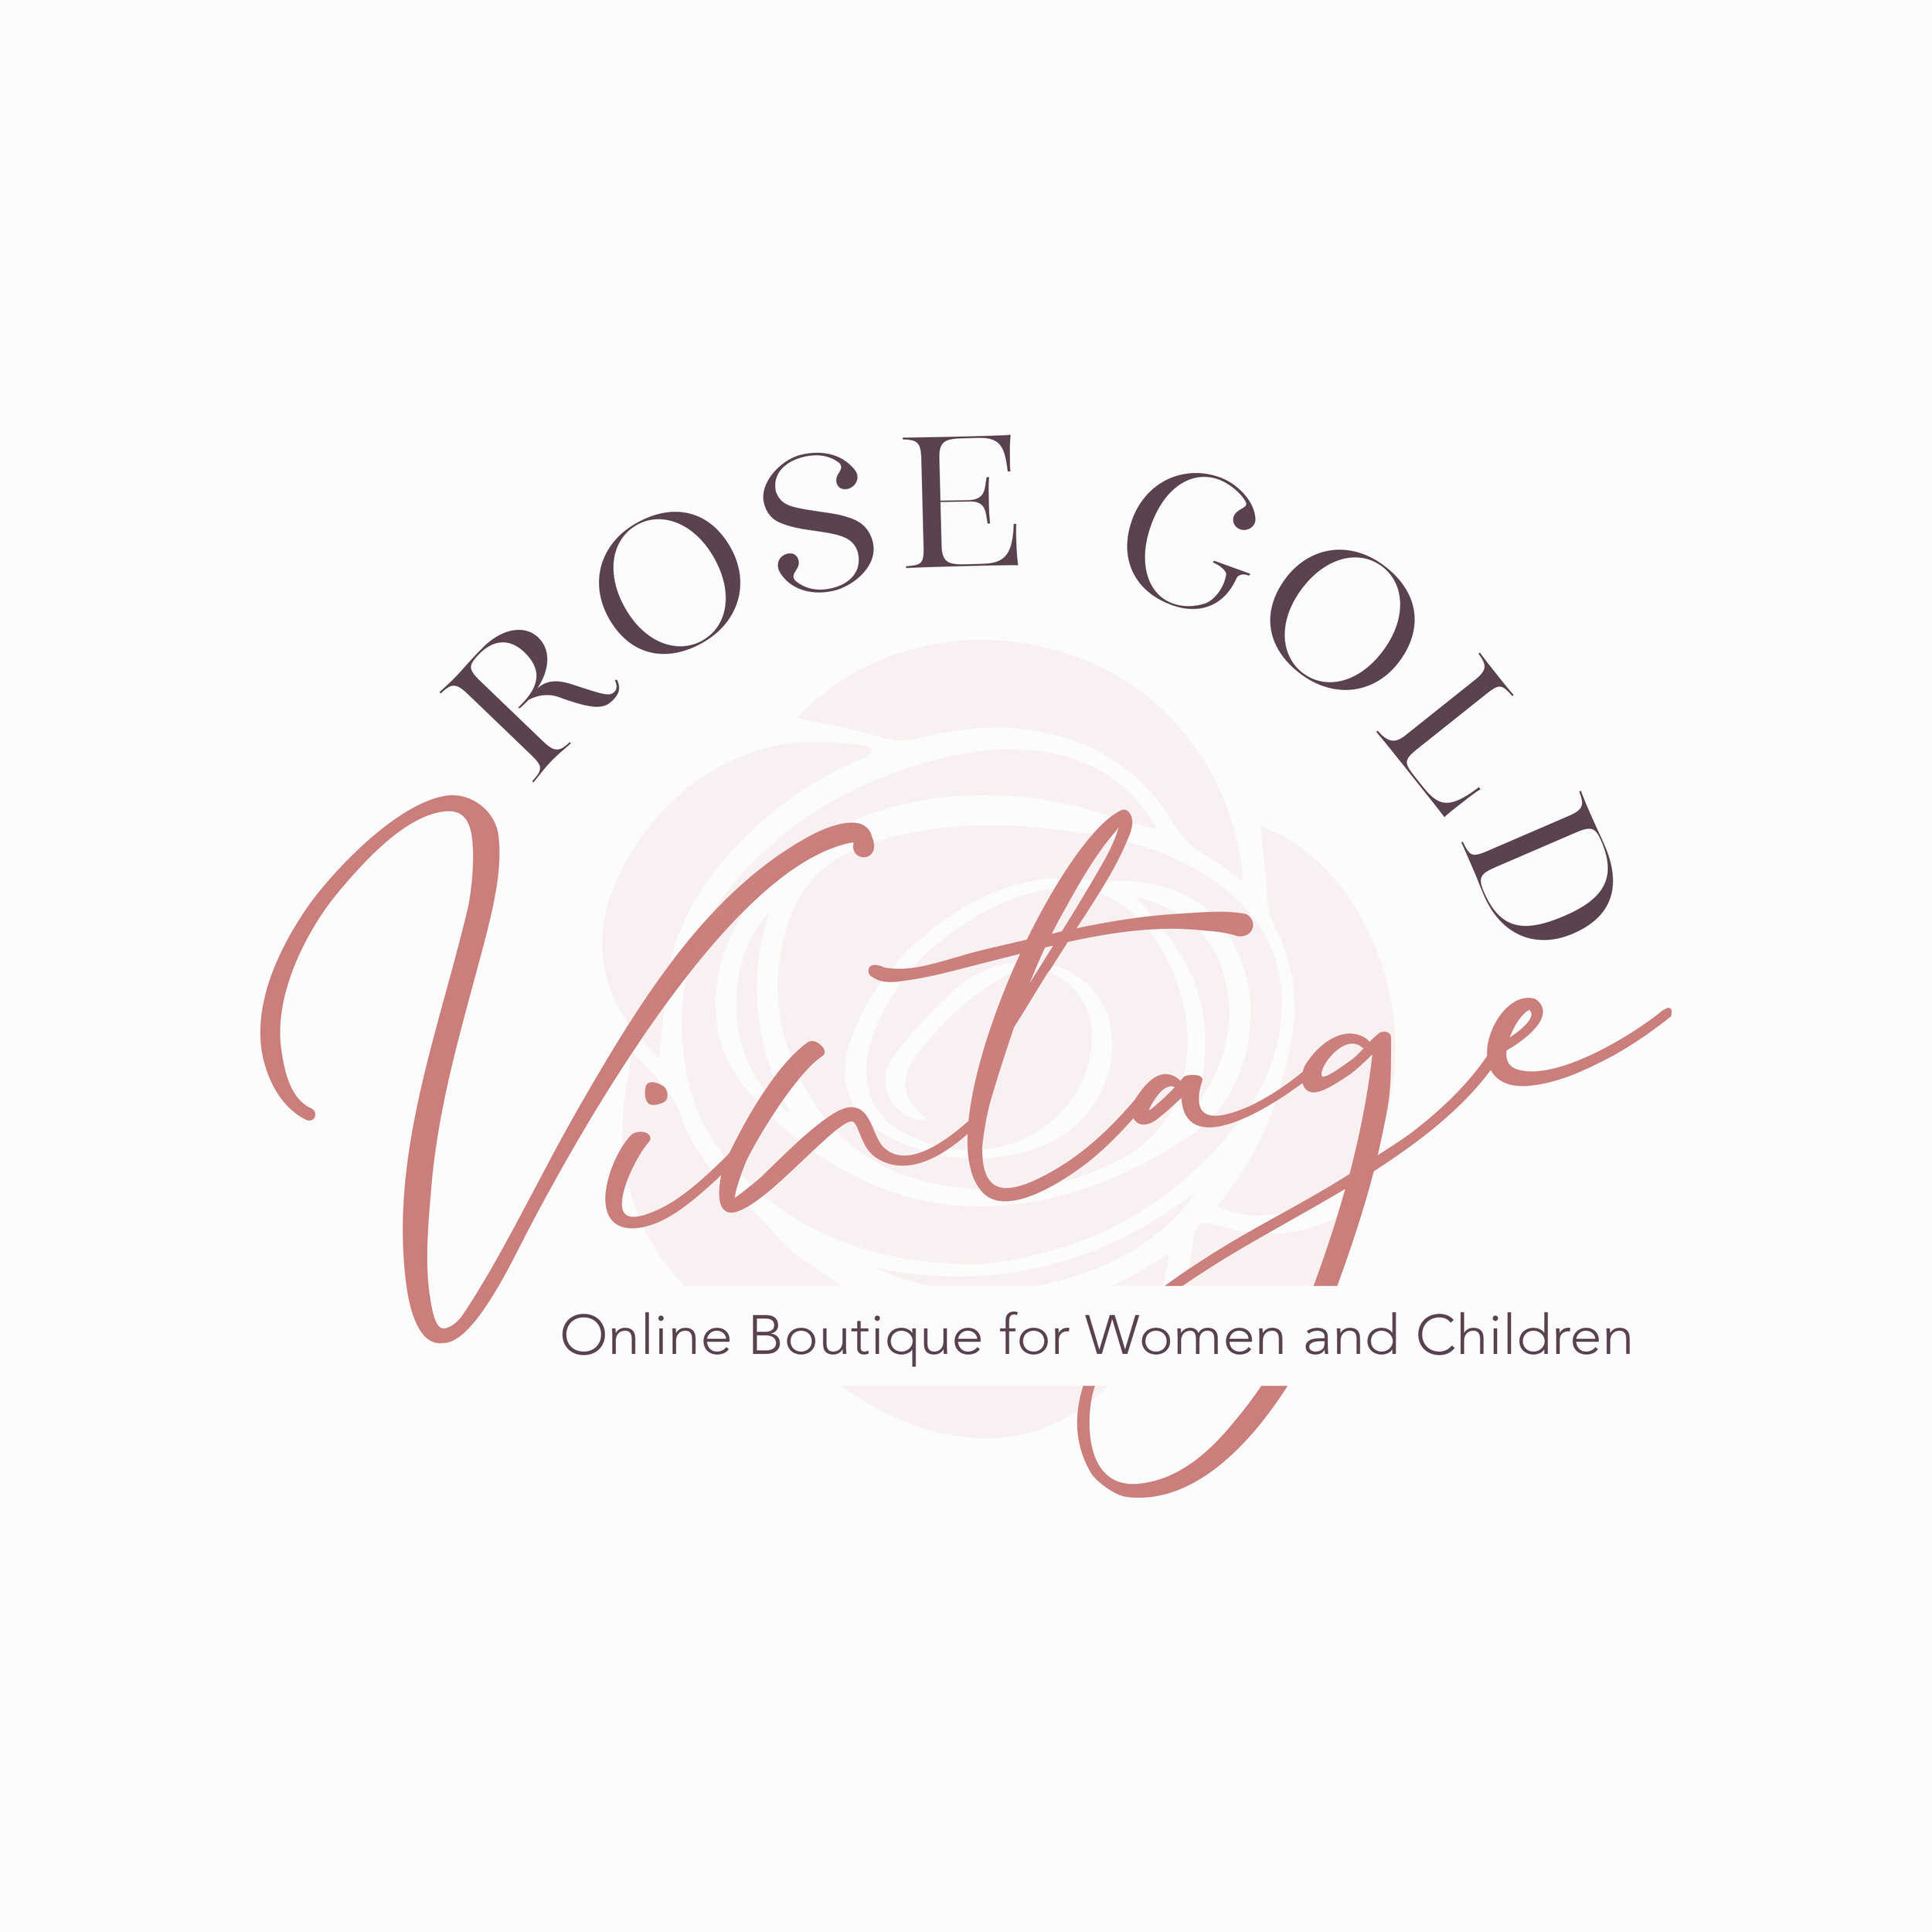 Rose Gold Vintage Branding Concept (Personal)  Rose Gold Vintage is a online boutique that sells clothing and accessories for women and children. There is a lack of a professional brand appearance and with that my main goal was to bring Rose Gold Vintage to the forefront of 2019 with fresh modern branding.